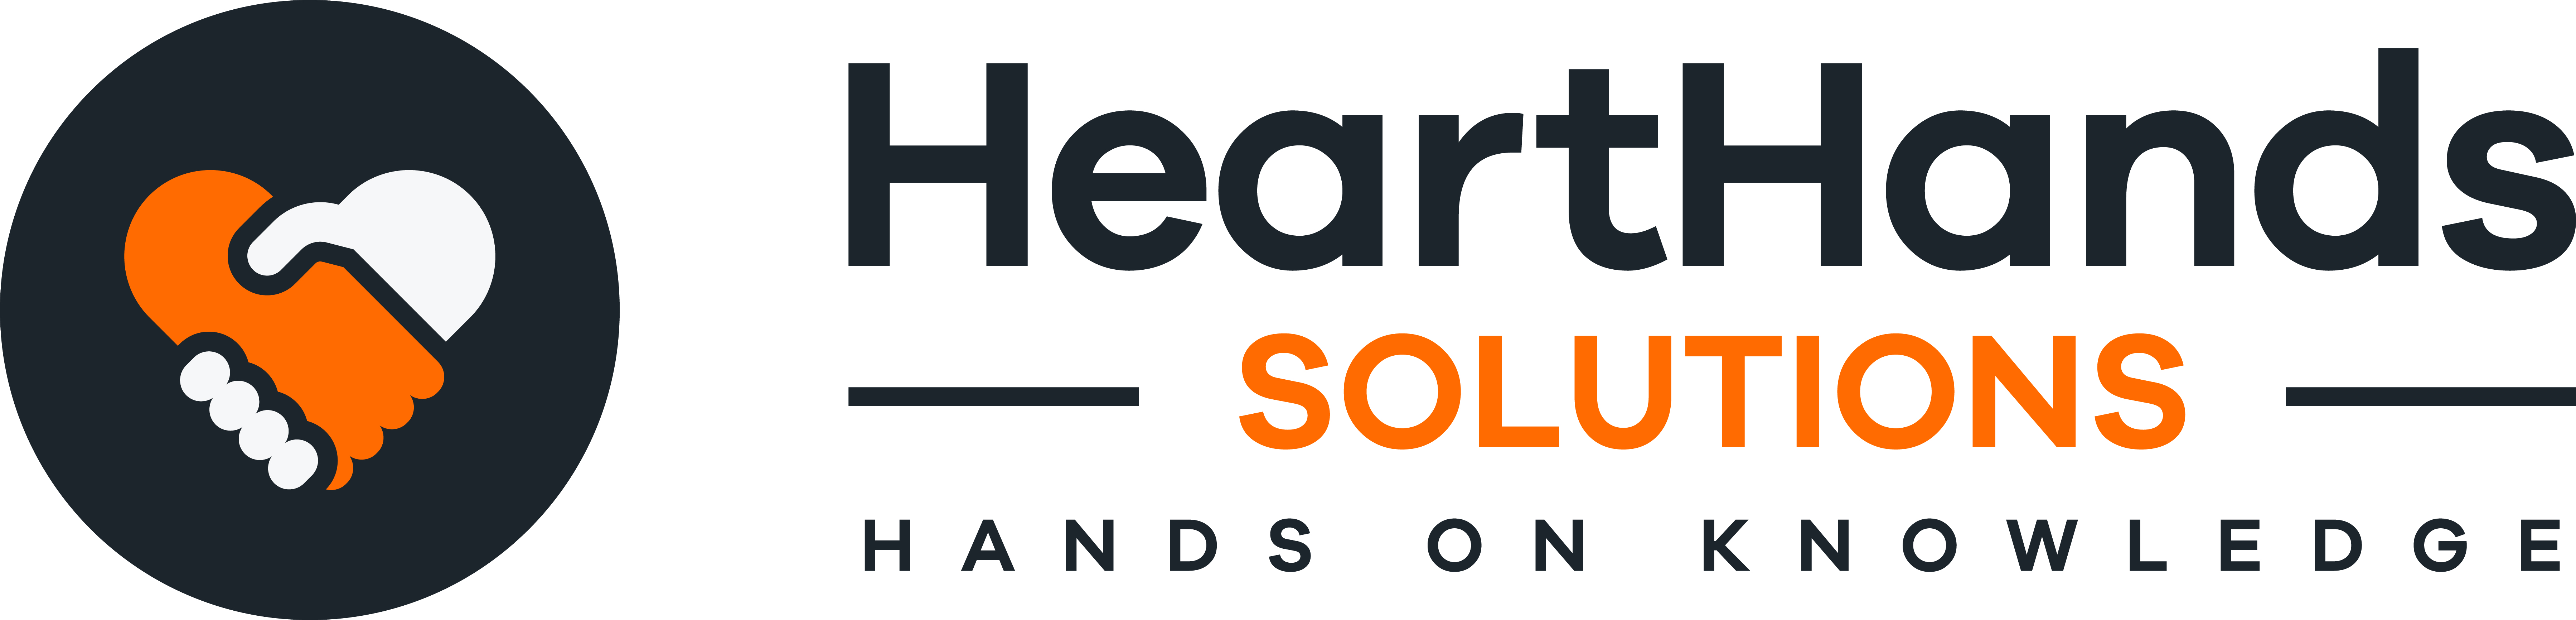 Hearthands logo